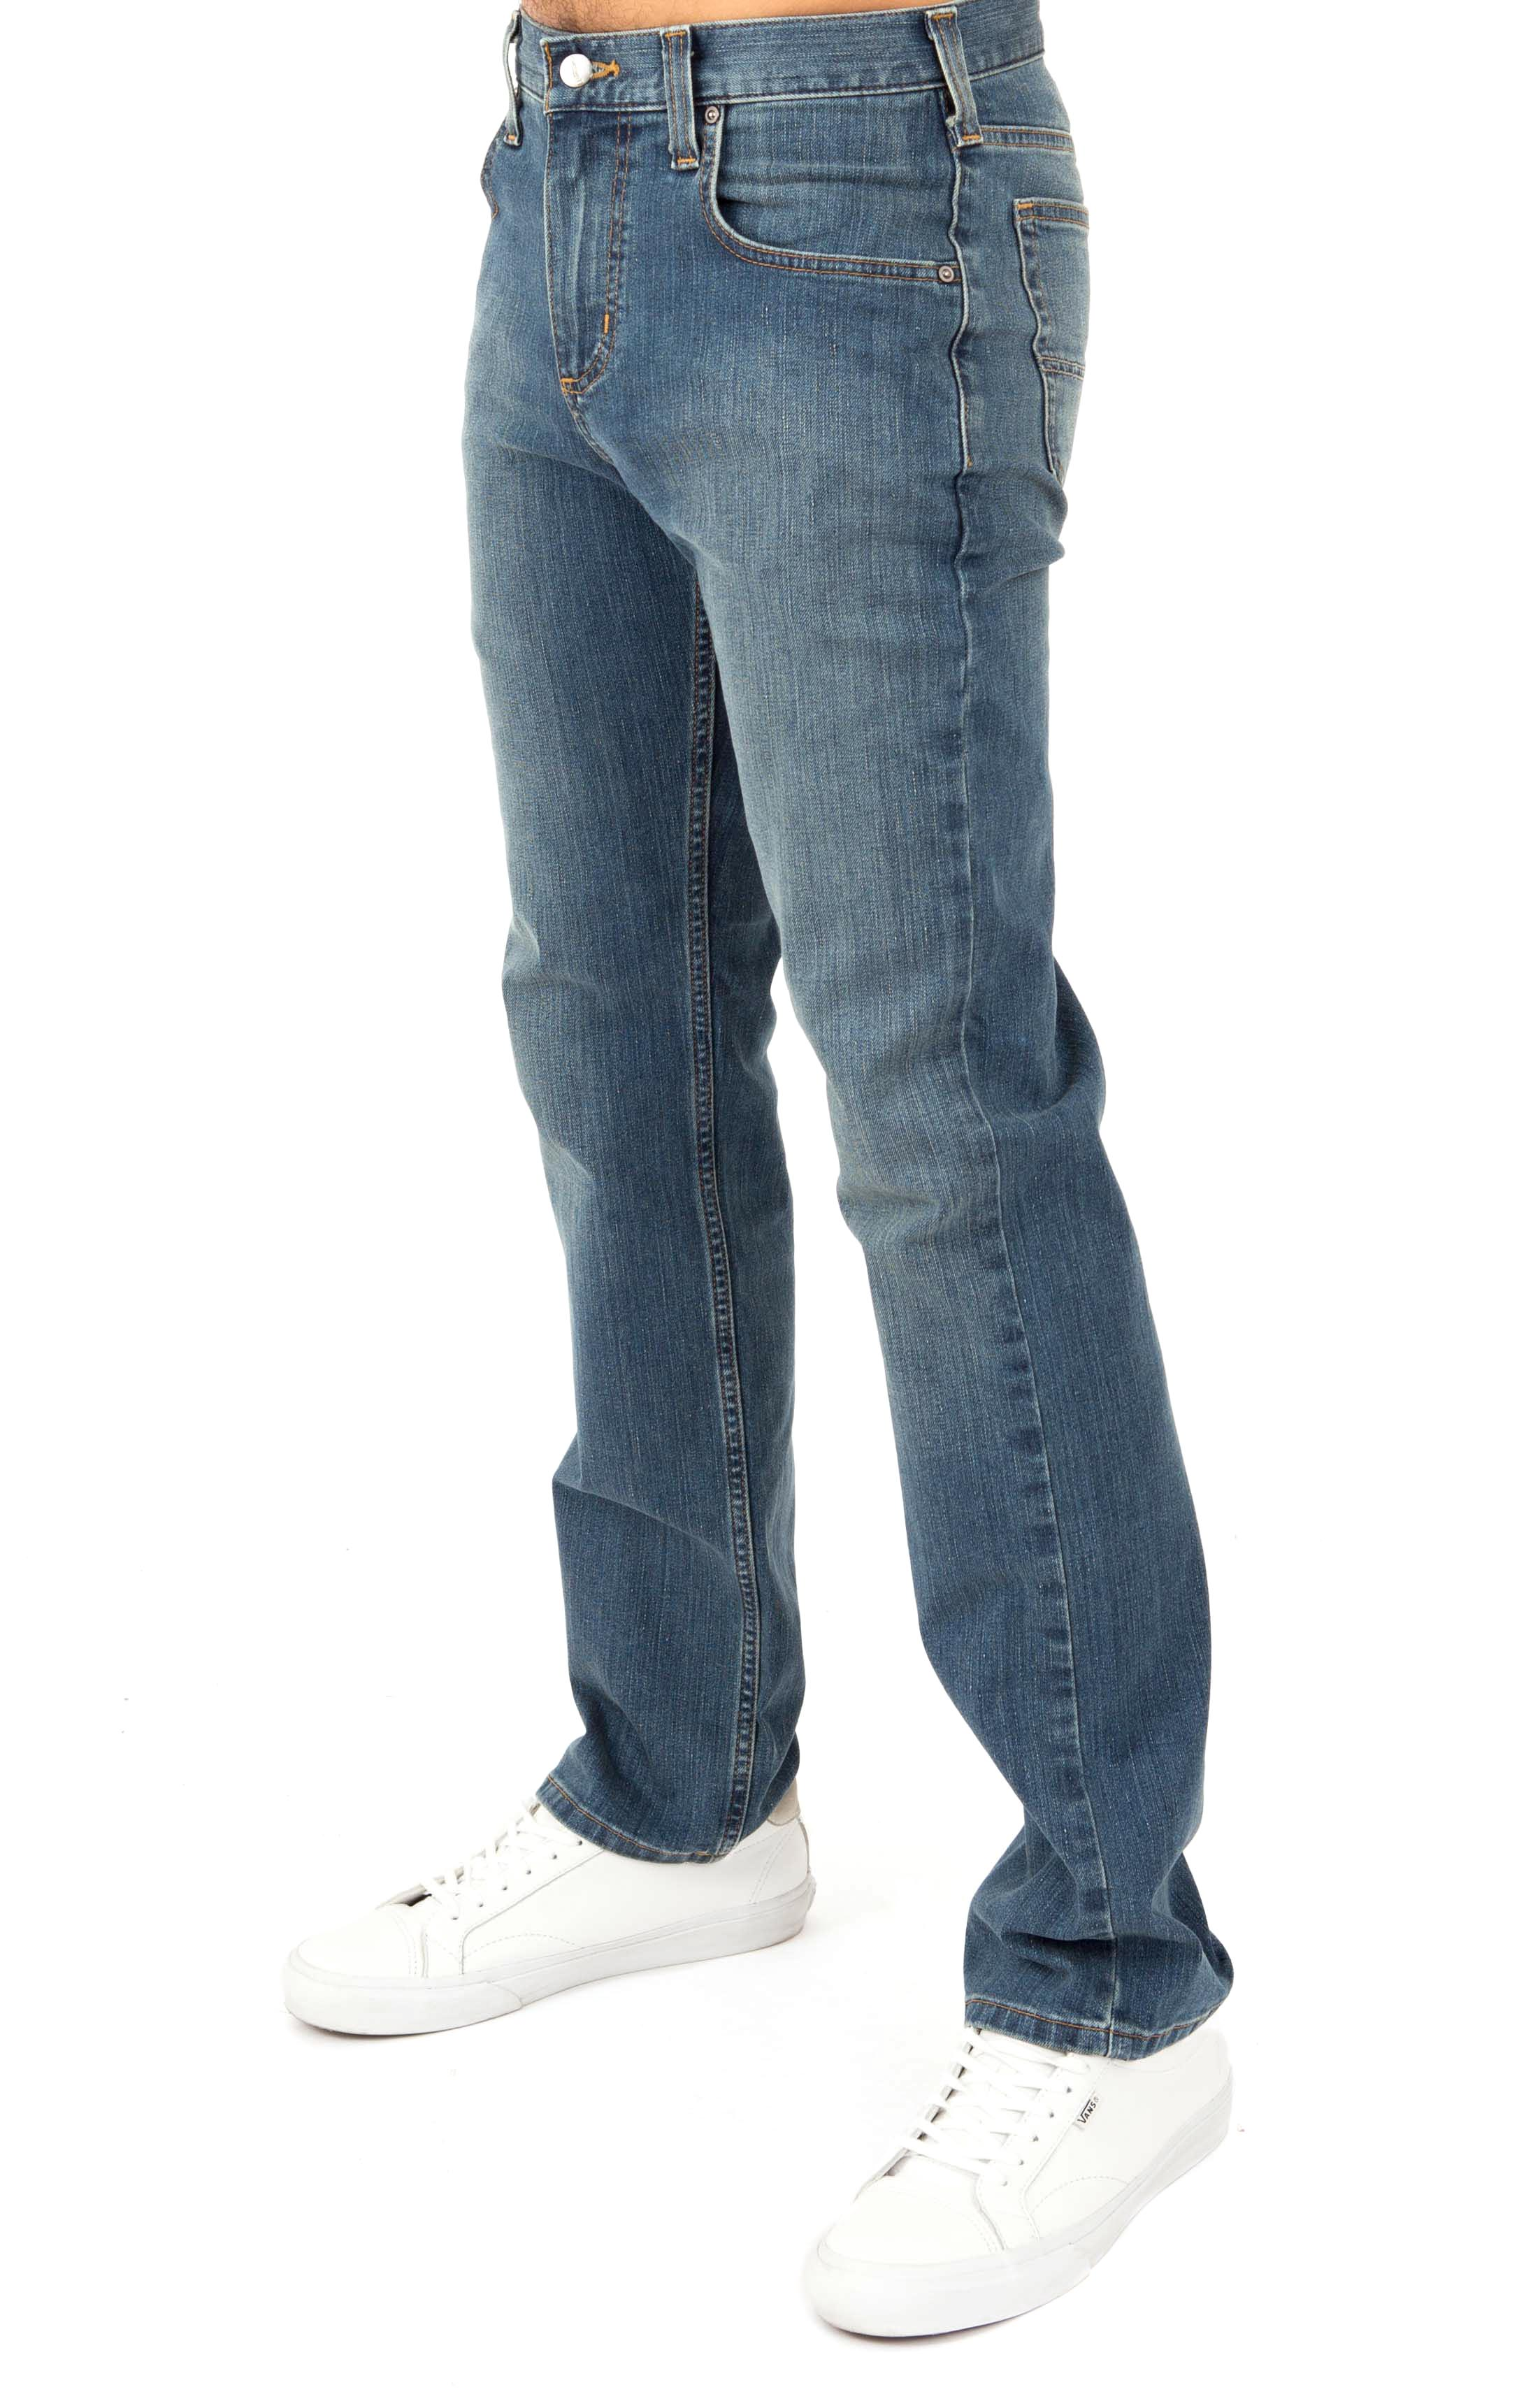 (102804) Rugged Flex Relaxed Fit Straight Leg Jean - Coldwater